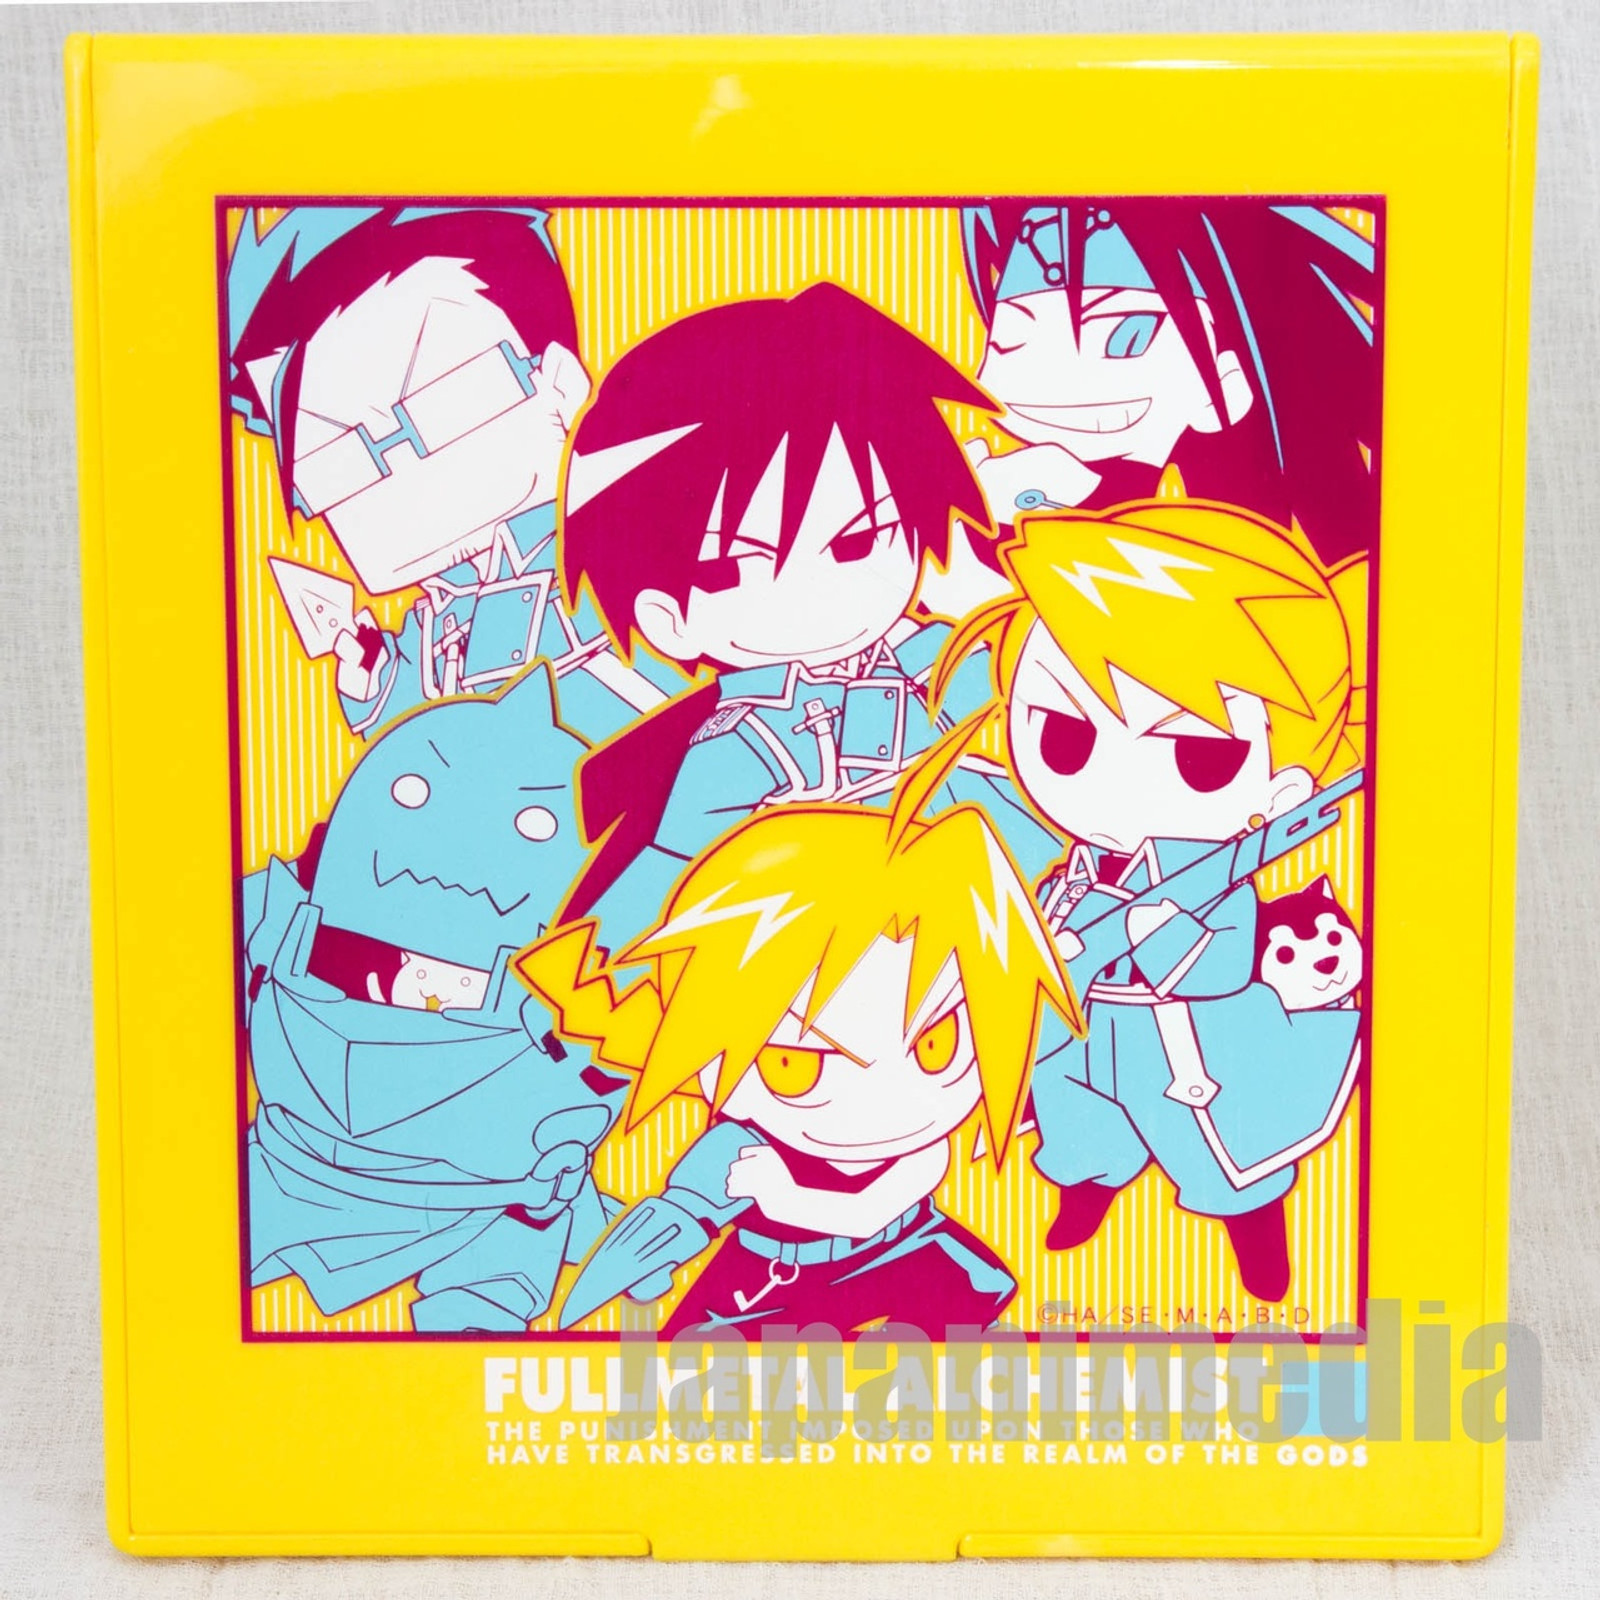 FullMetal Alchemist Folding Desktop Mirror [Edward / Alphonse / Roy / Hughes / Riza / Envy] Movic JAPAN ANIME